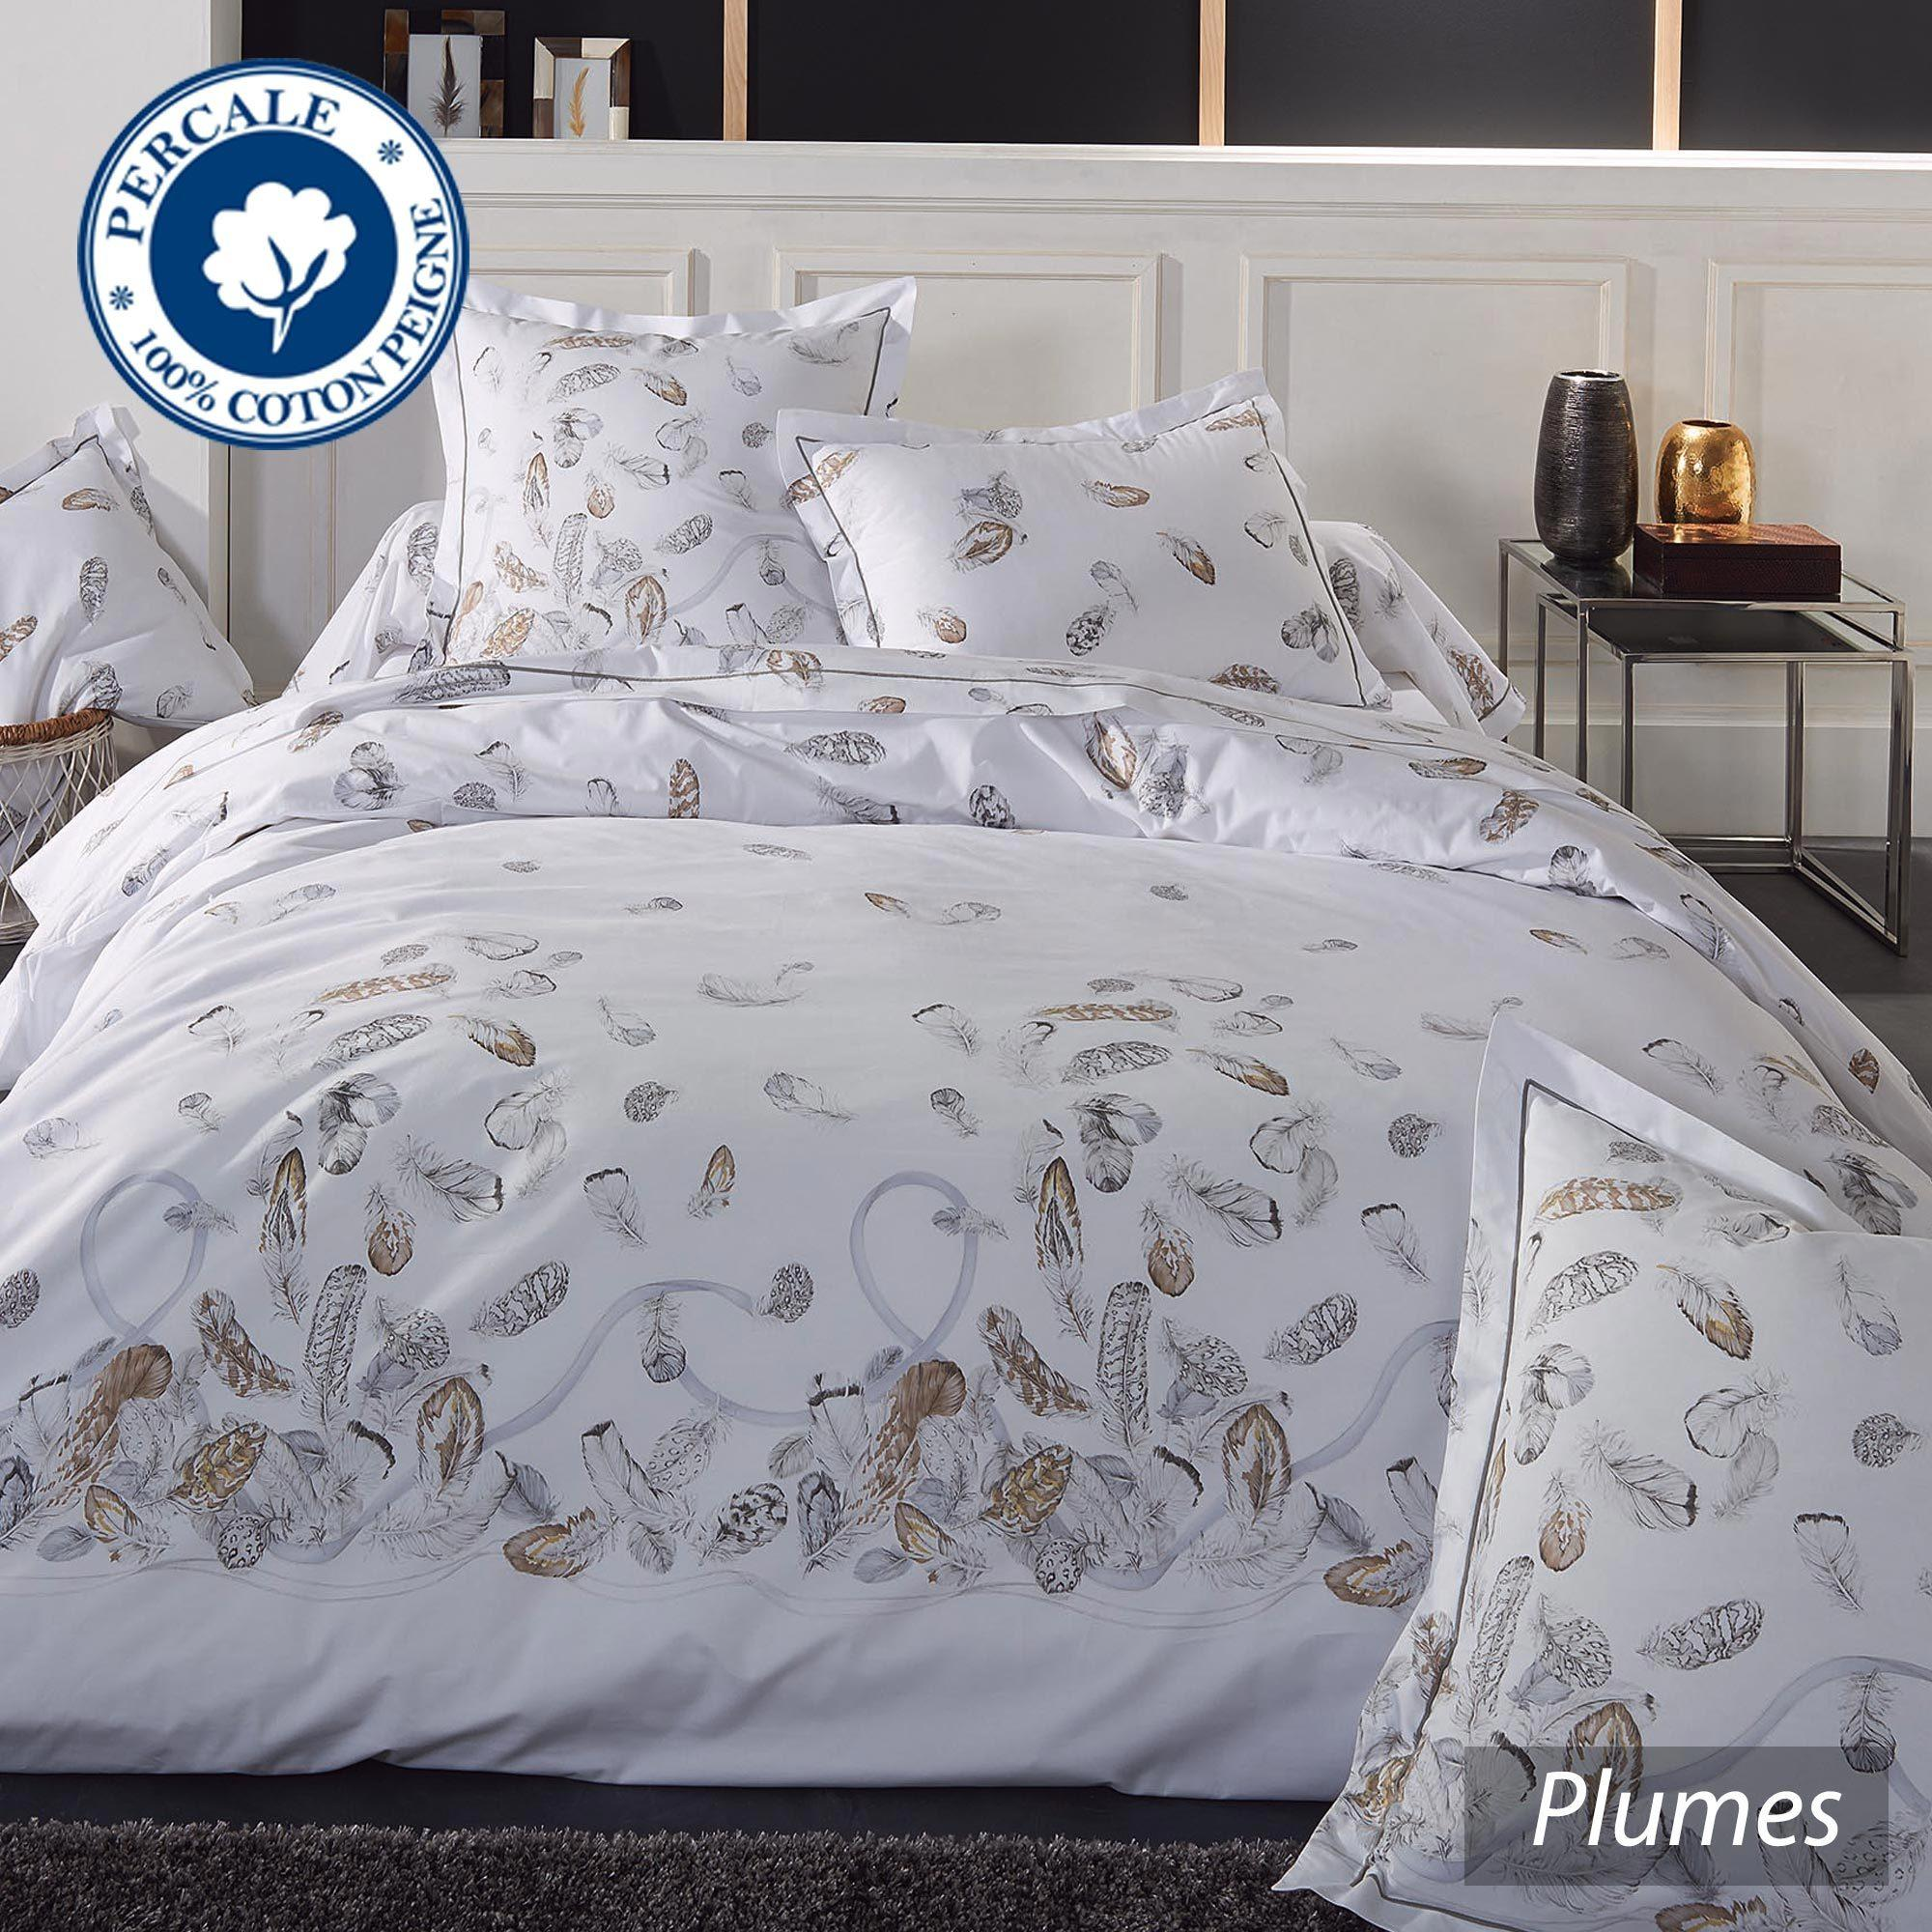 parure de lit percale pur coton peign 300x240 cm plumes linnea vente de linge de maison. Black Bedroom Furniture Sets. Home Design Ideas